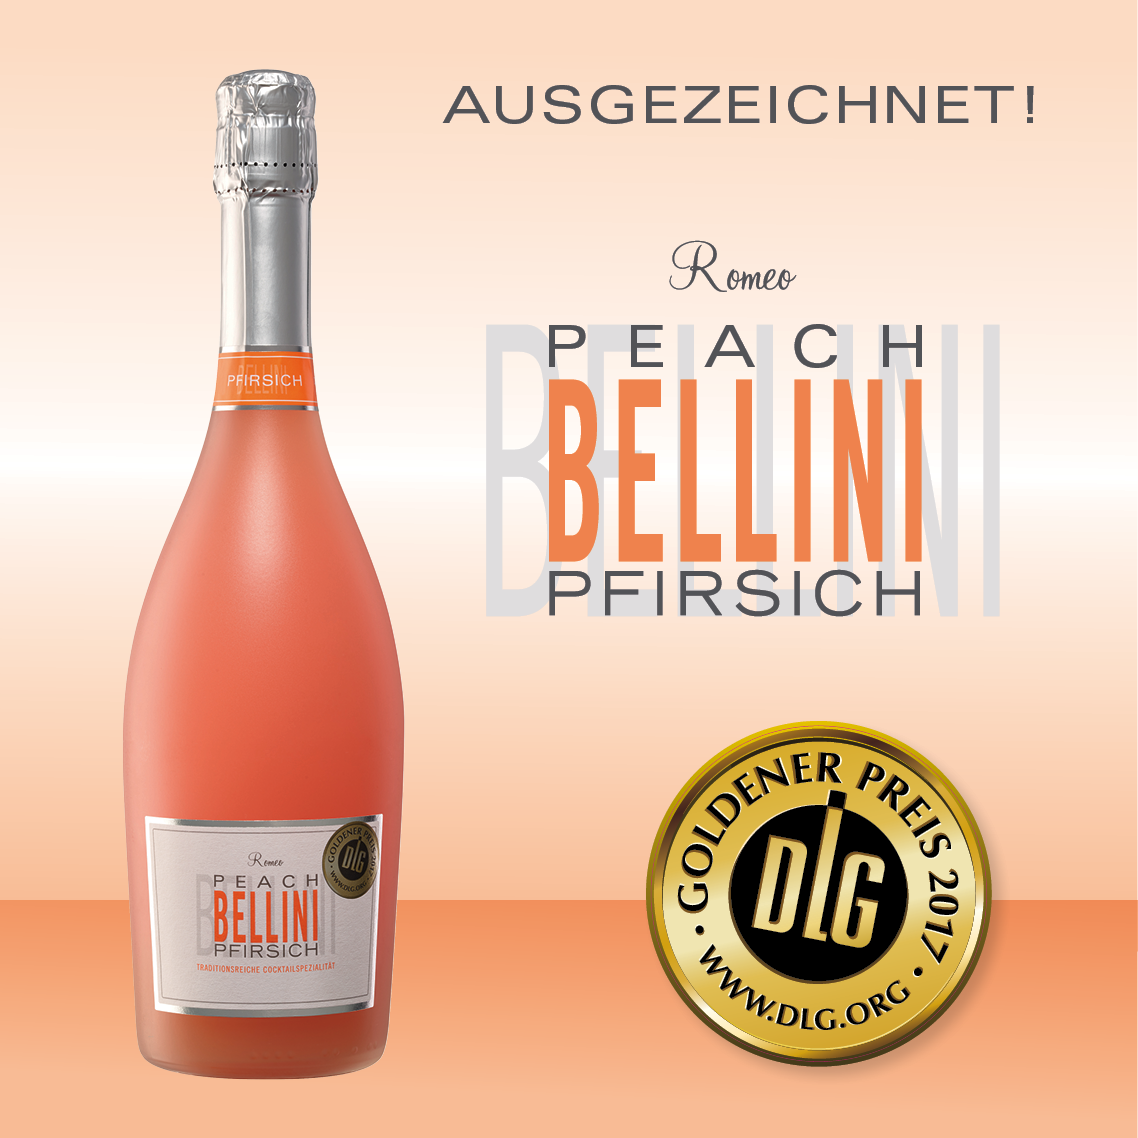 Romeo Bellini Peach Goldener Preis 2017 Award from DLG.org